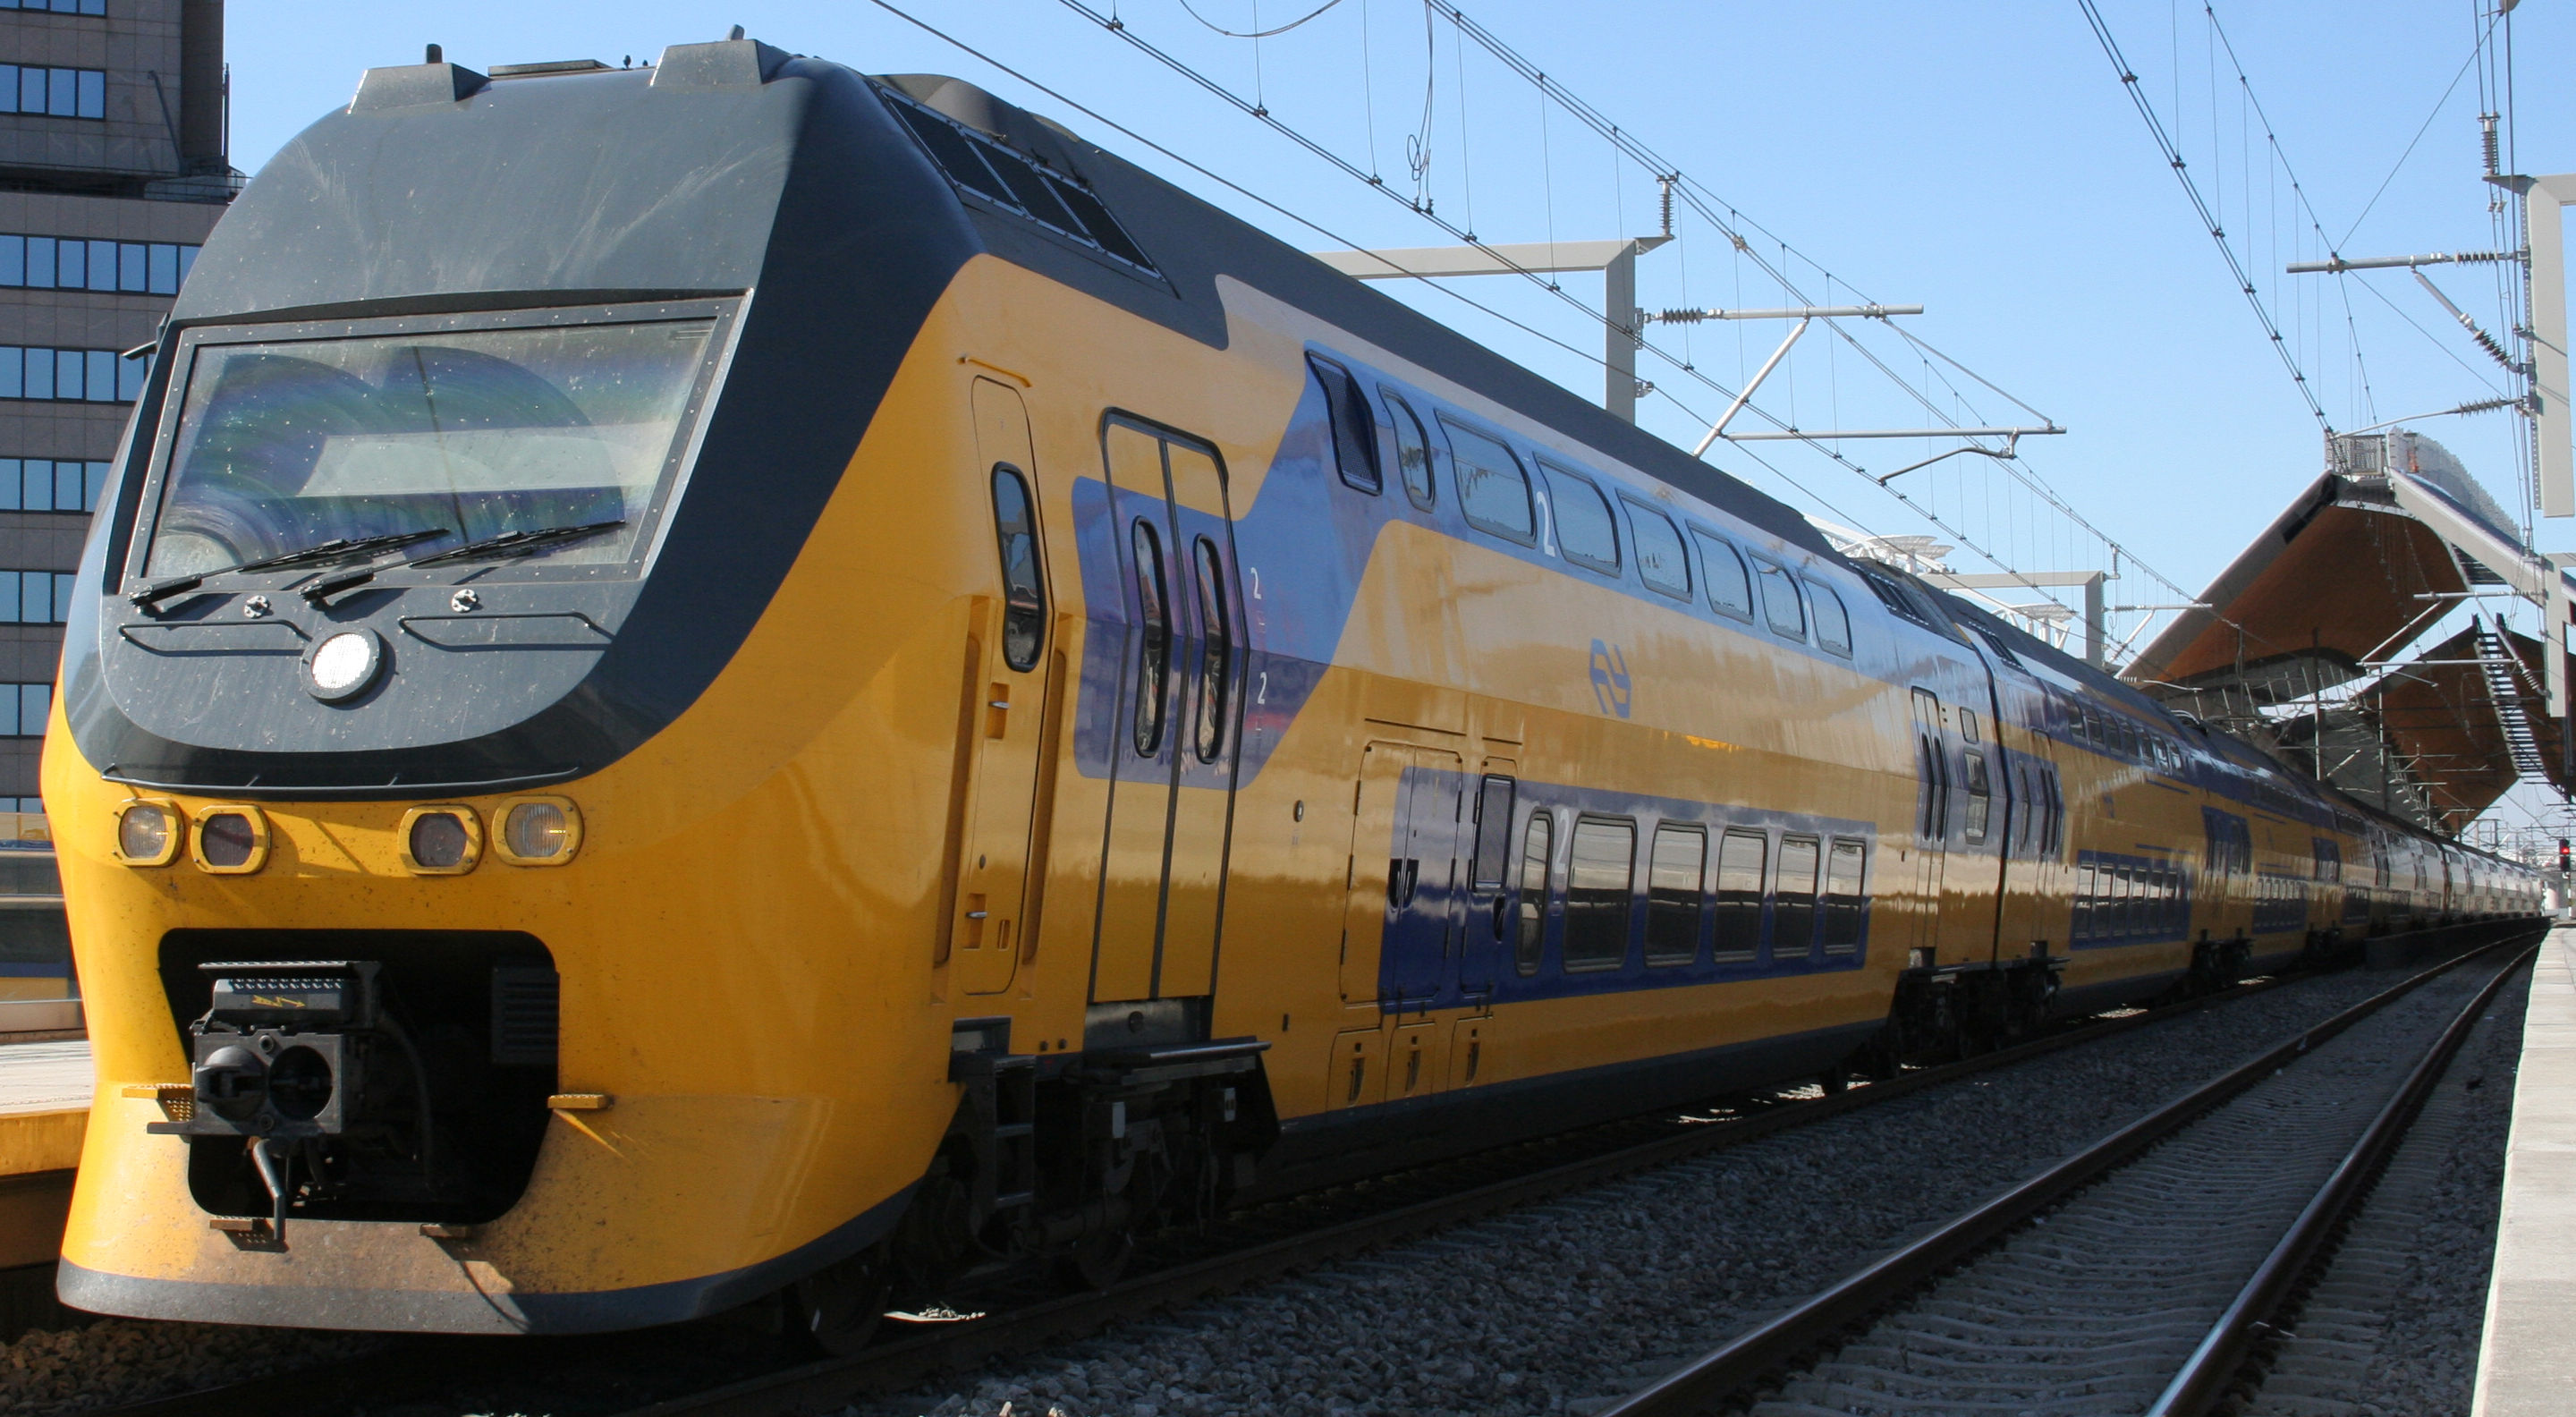 Rail transport in the Netherlands - Wikipedia